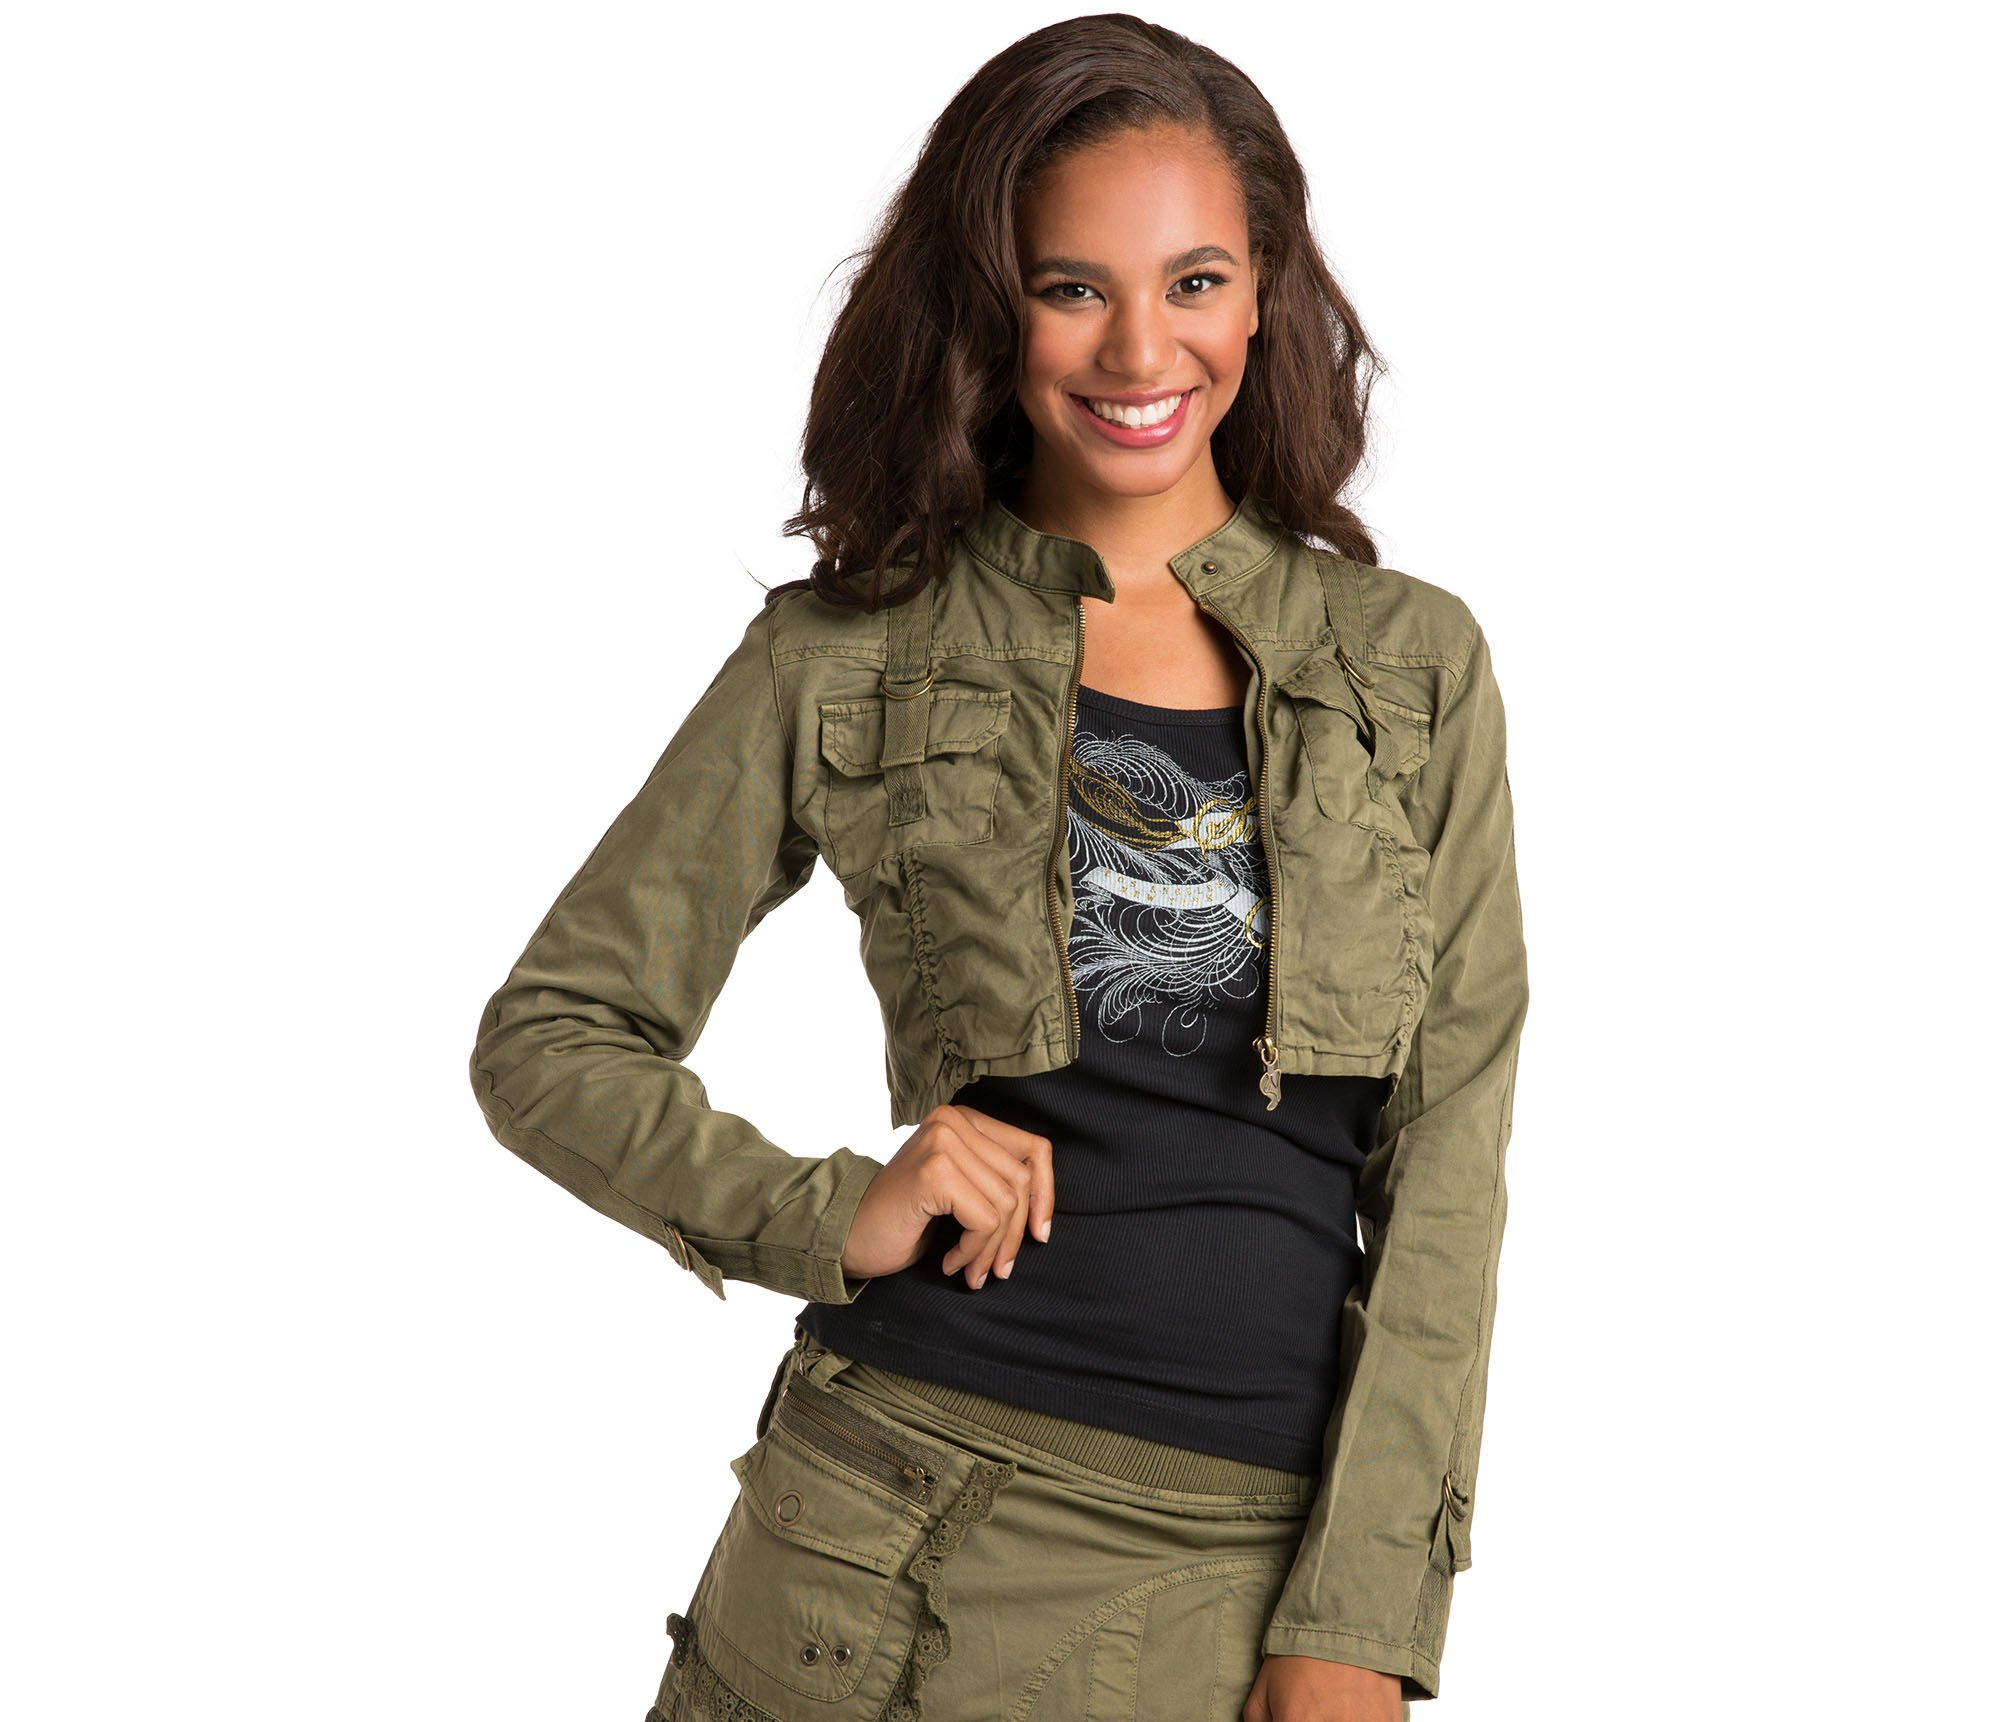 Sweet Vibes Women Stretch Twill Garment Dyed Olive Utility Jacket Lace Strap Size S